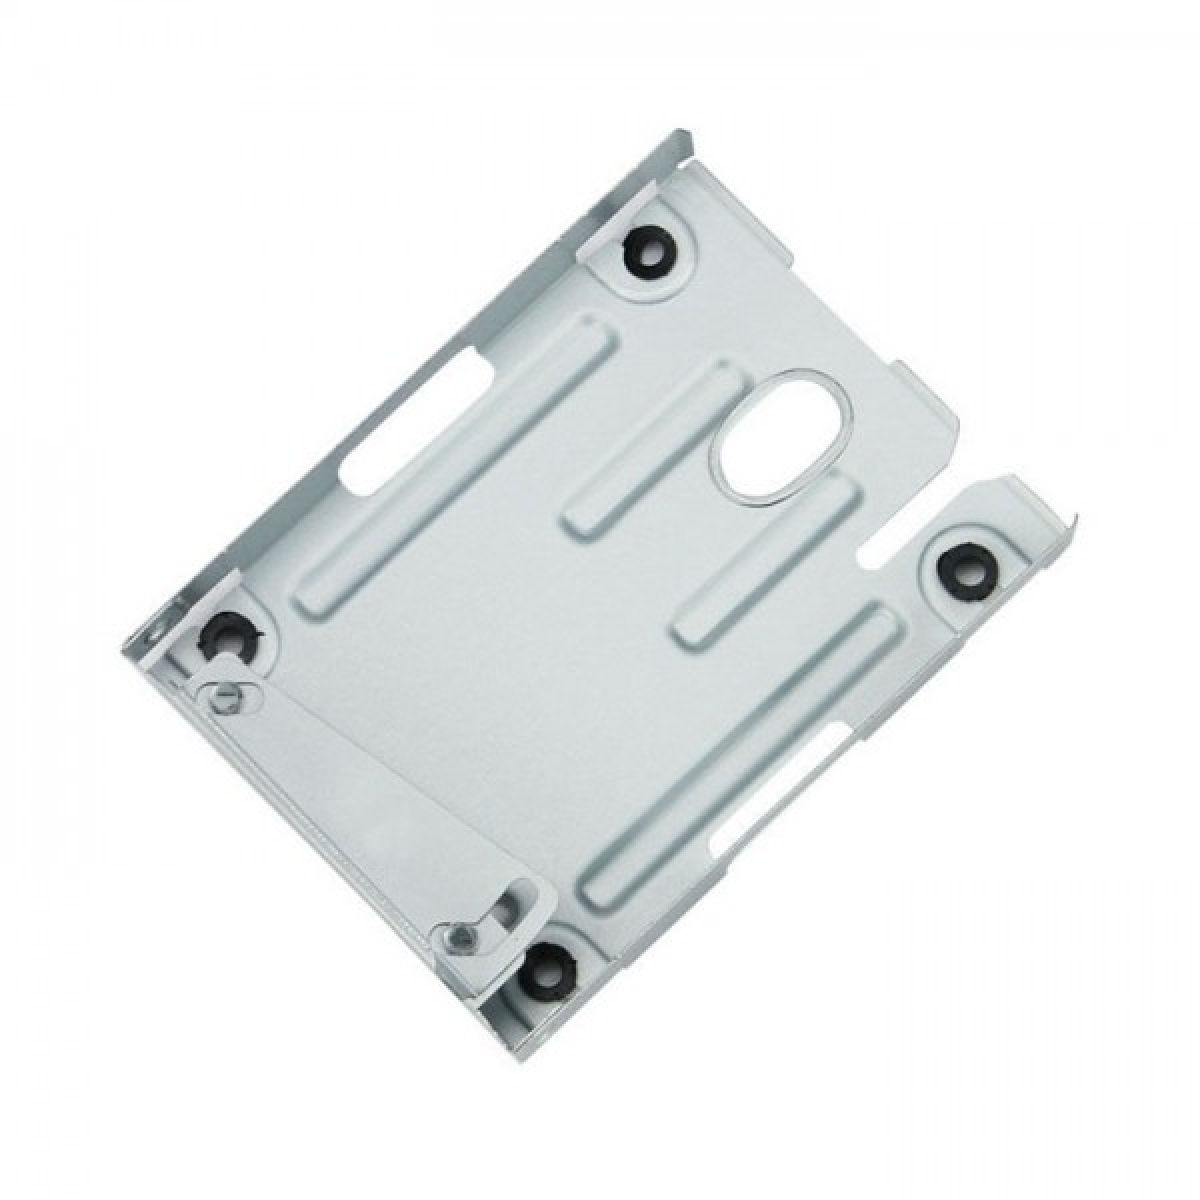 "2.5"" Hard Disk Drive Mounting Kit Bracket for PS3 Super Slim CECH-400x Series"